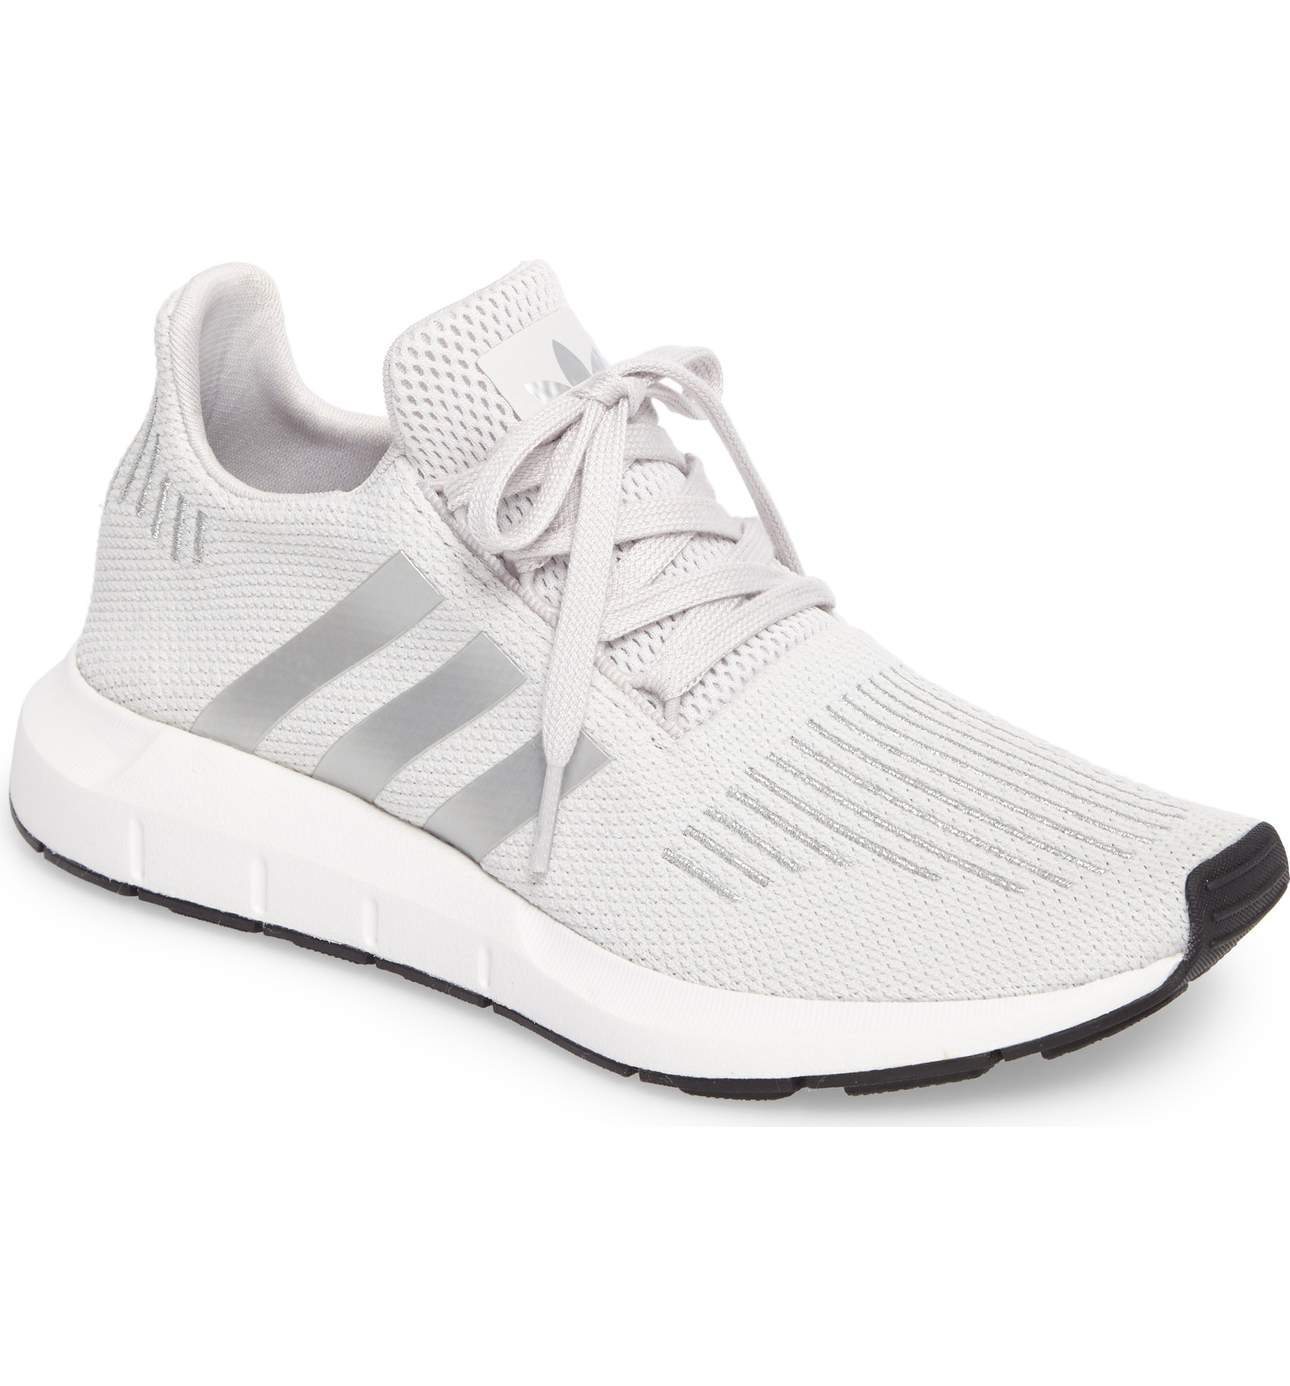 Adidas Swift Run Sneaker - For the woman in your life who is always on the move, this comfortable, sleek, and versatile shoe will check all of her boxes.